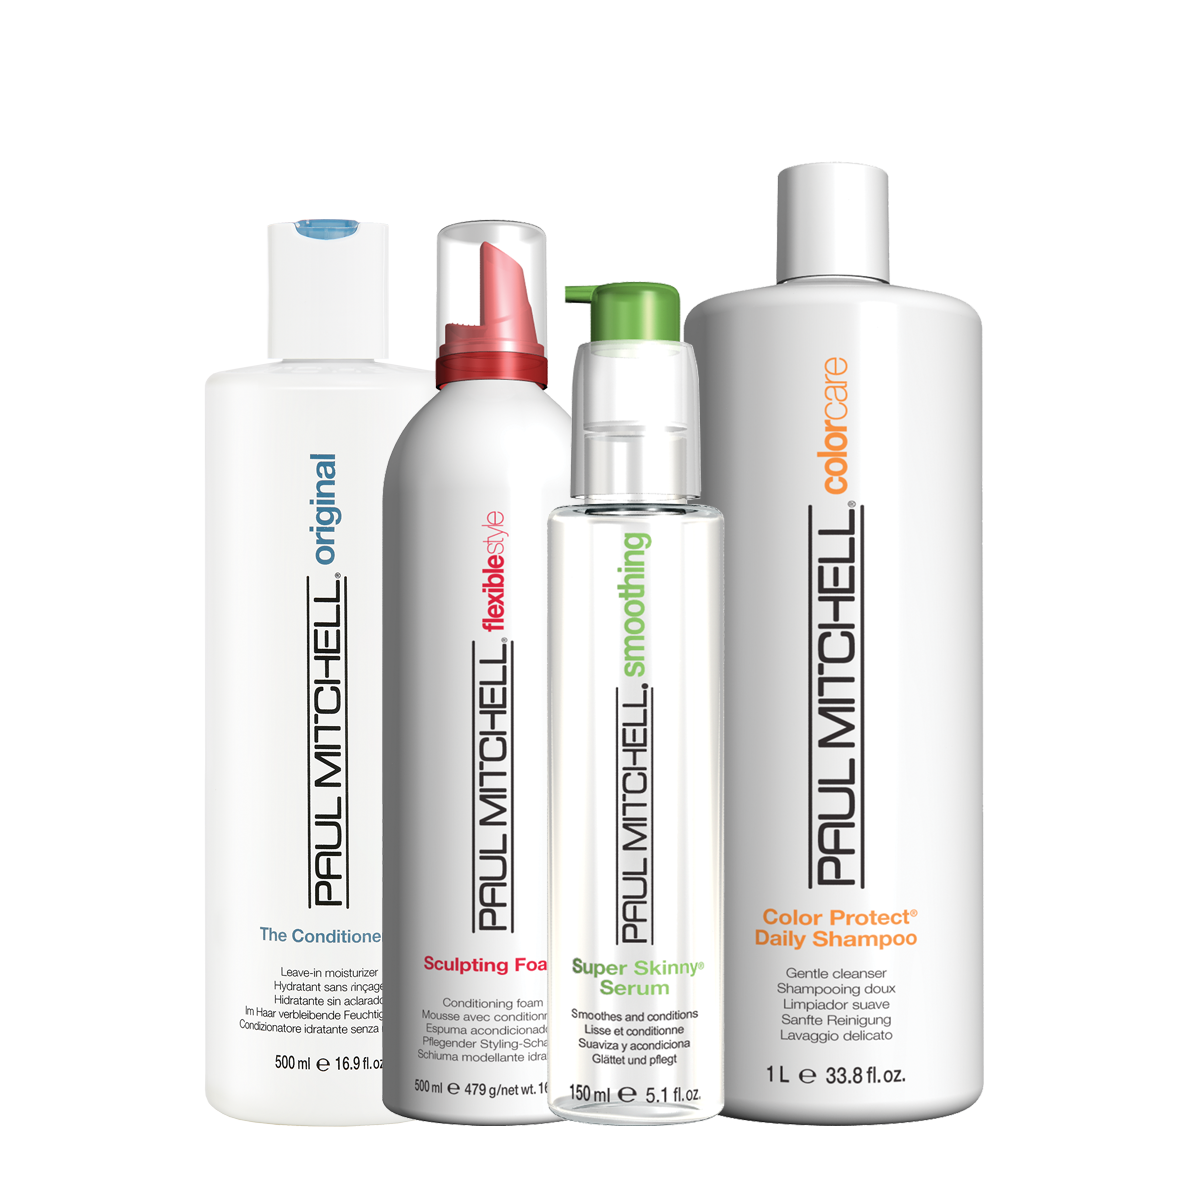 Paul Mitchell ALL PRODUCTS buy one, get one 50% off